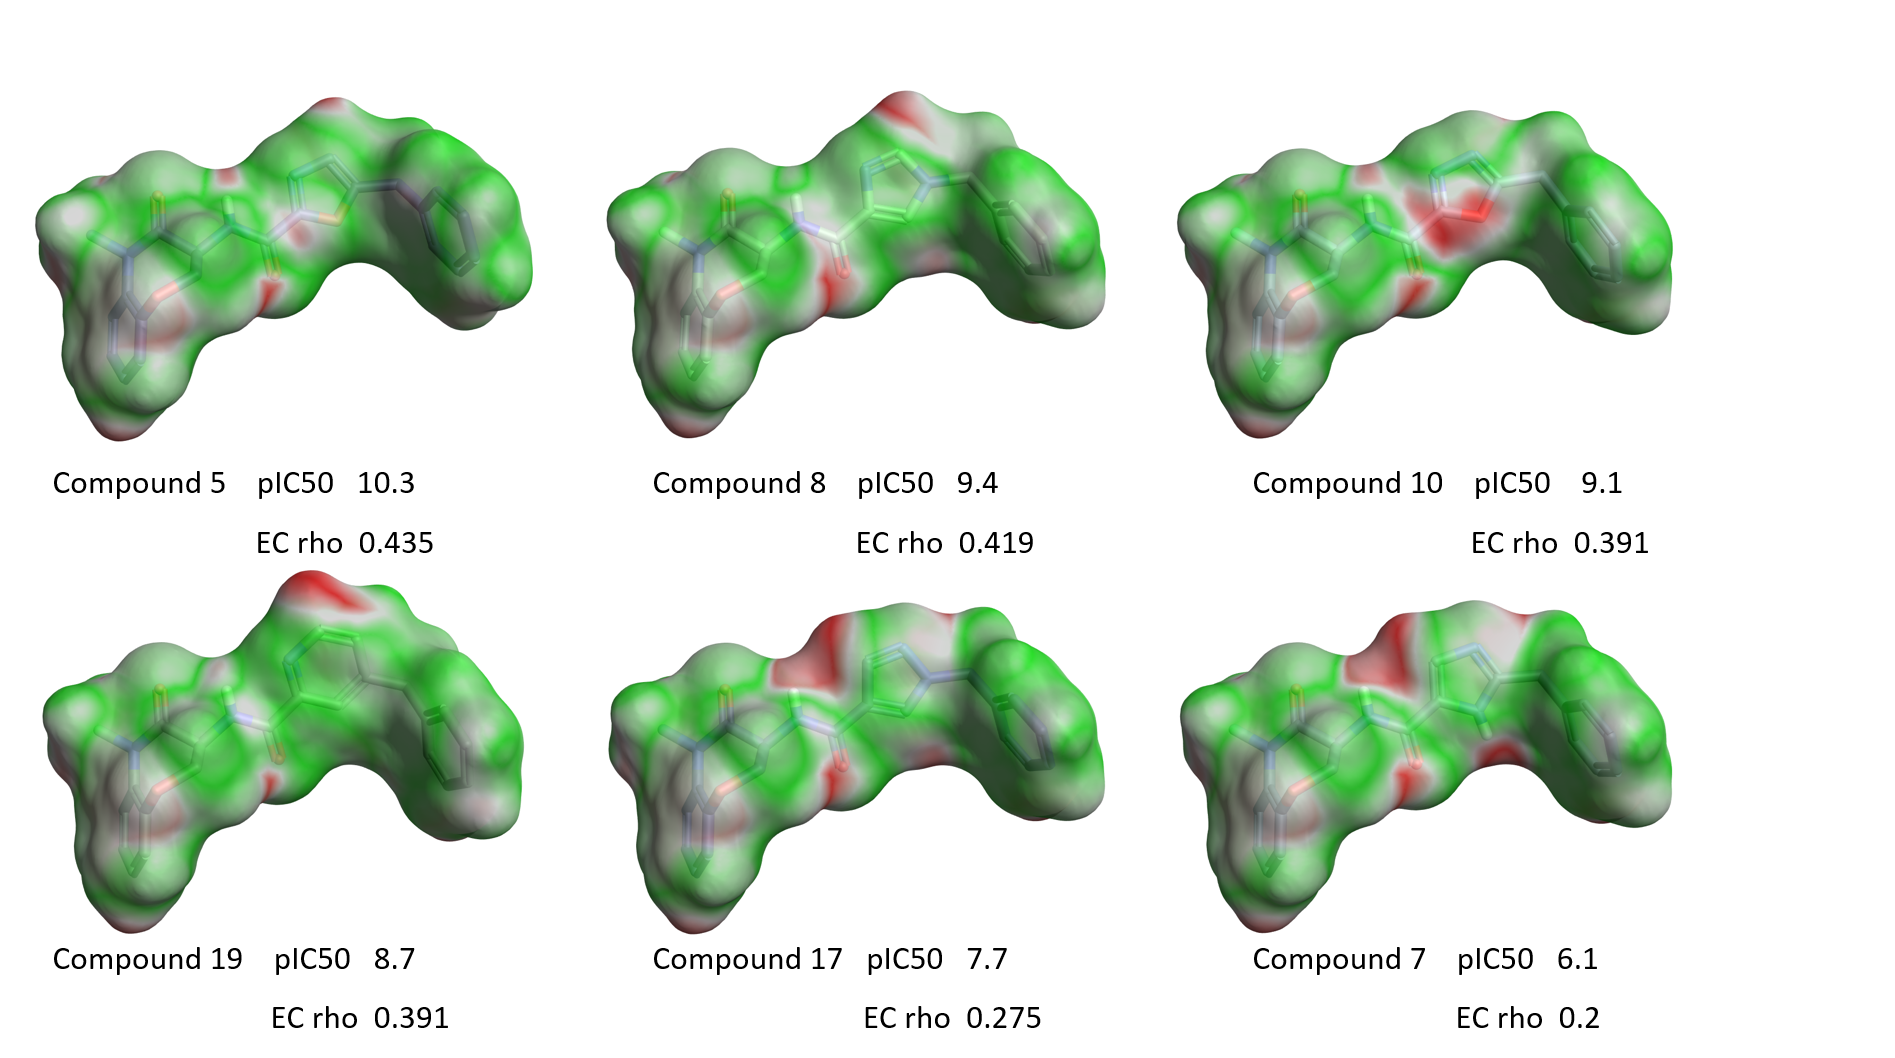 Figure 10_EC maps of a few examples with variation around the isoxazole ring